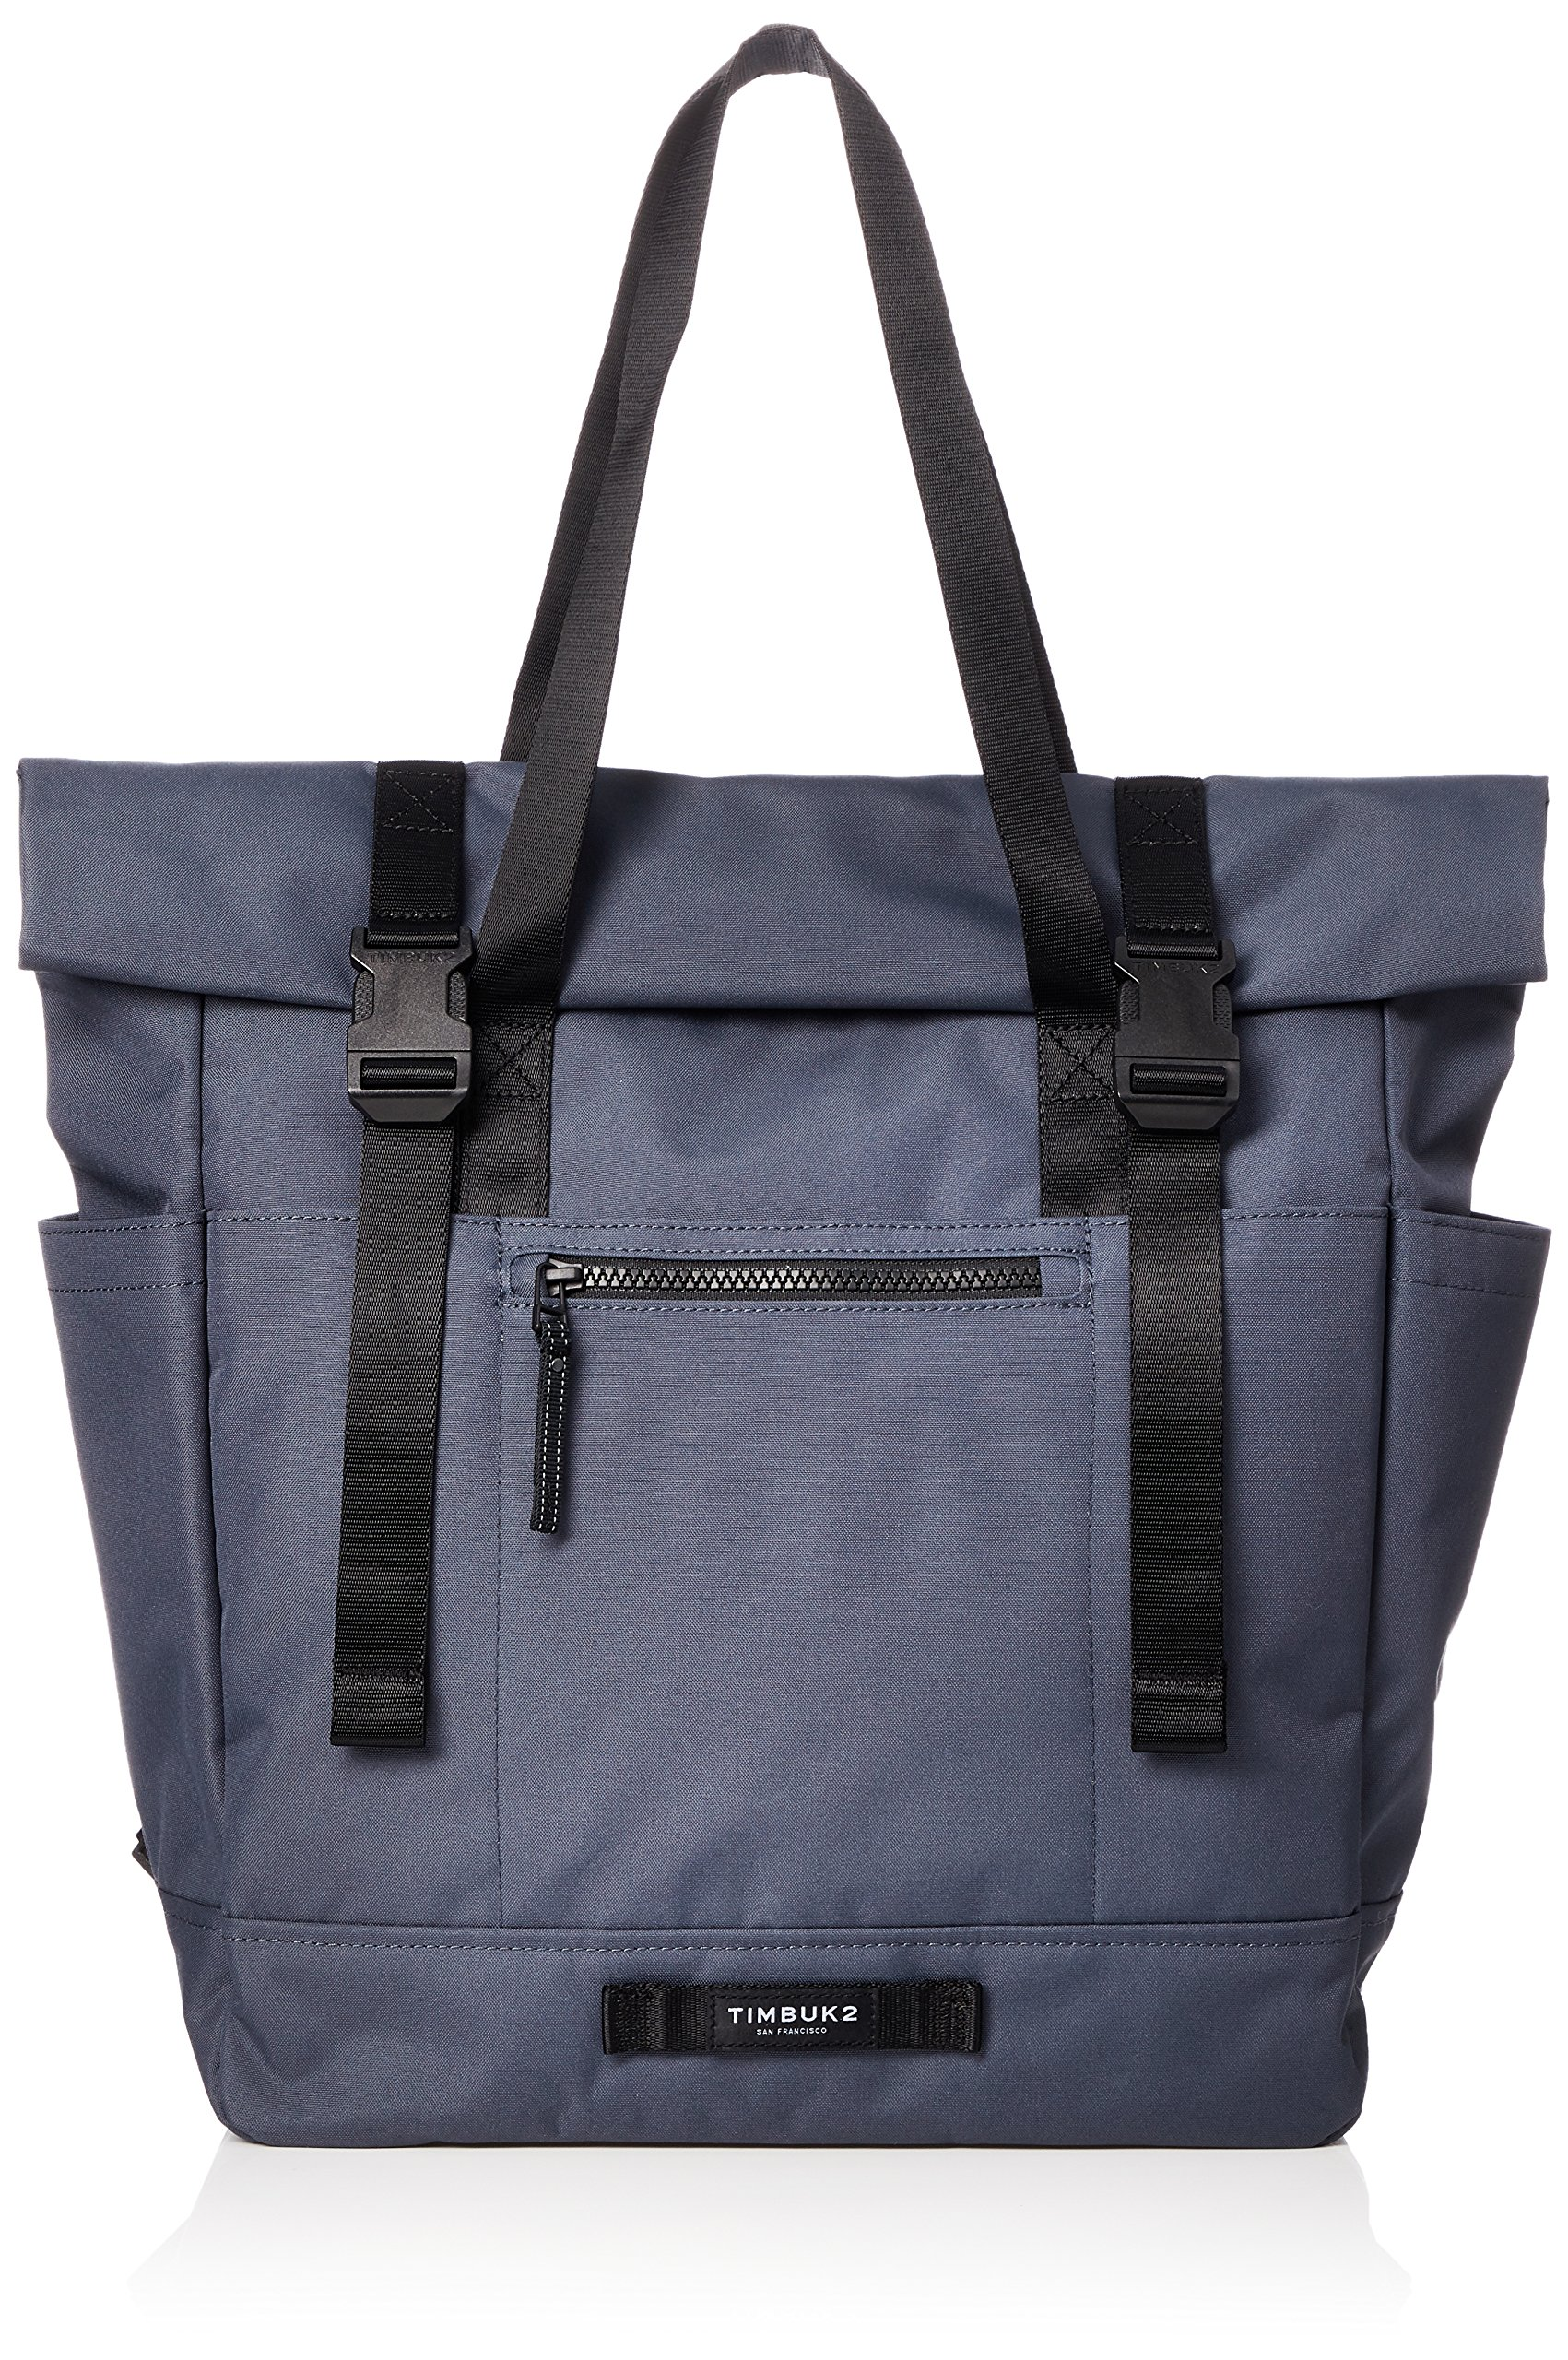 Timbuk2 Forge Pack Tote, OS, Granite, One Size